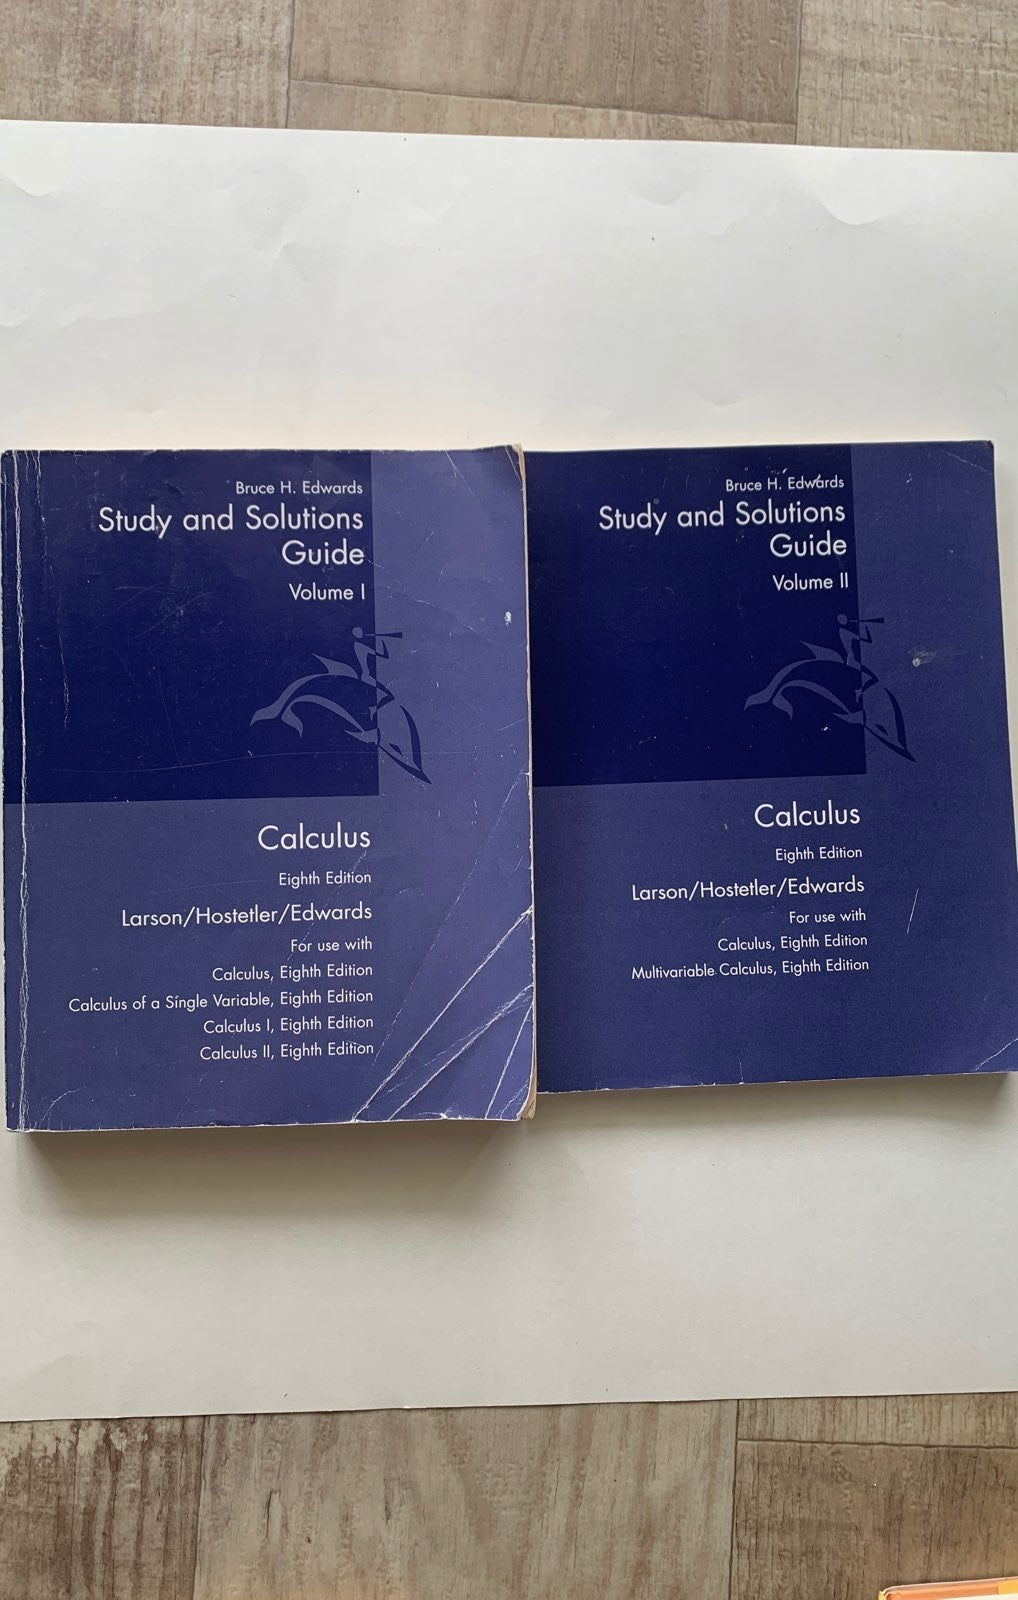 Calculus books and scientific calculator